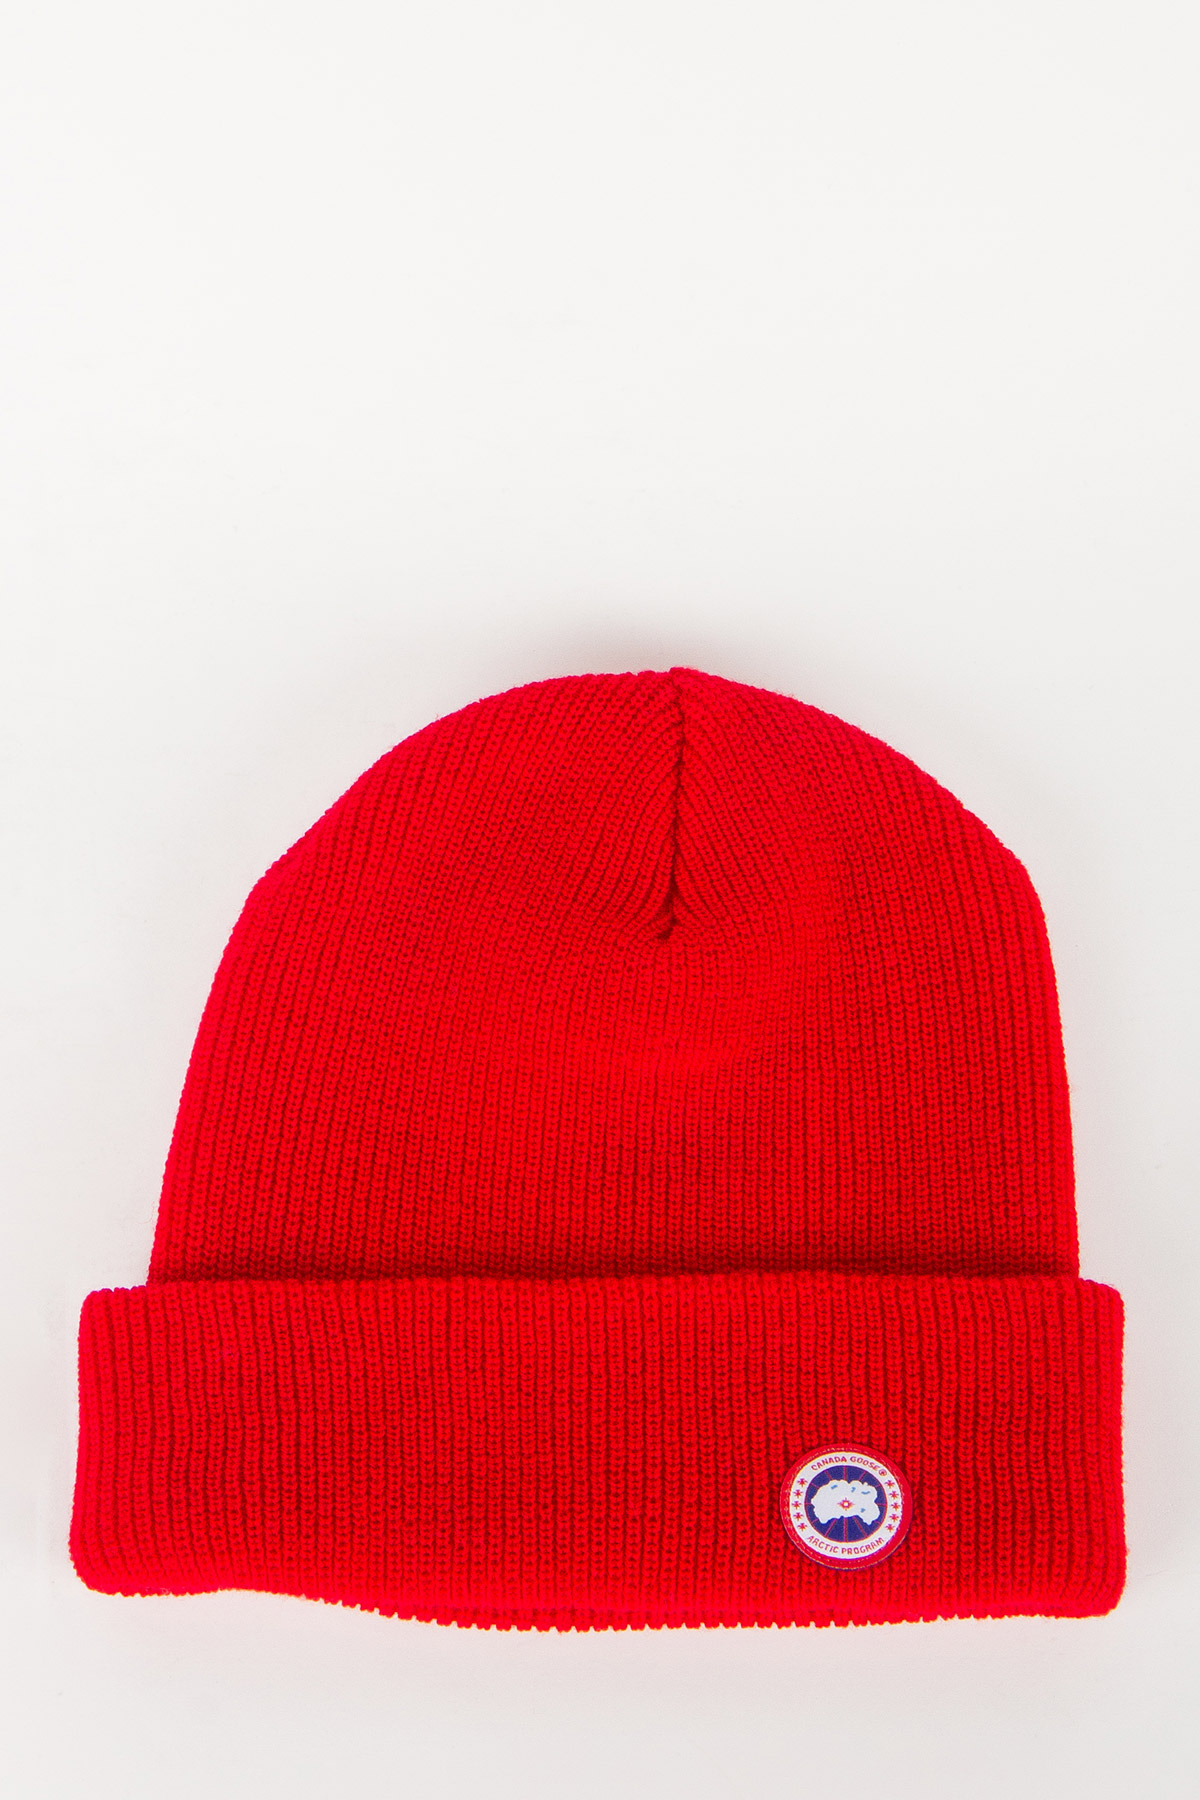 Canada goose hats vs caps for 43591 white cap terrace